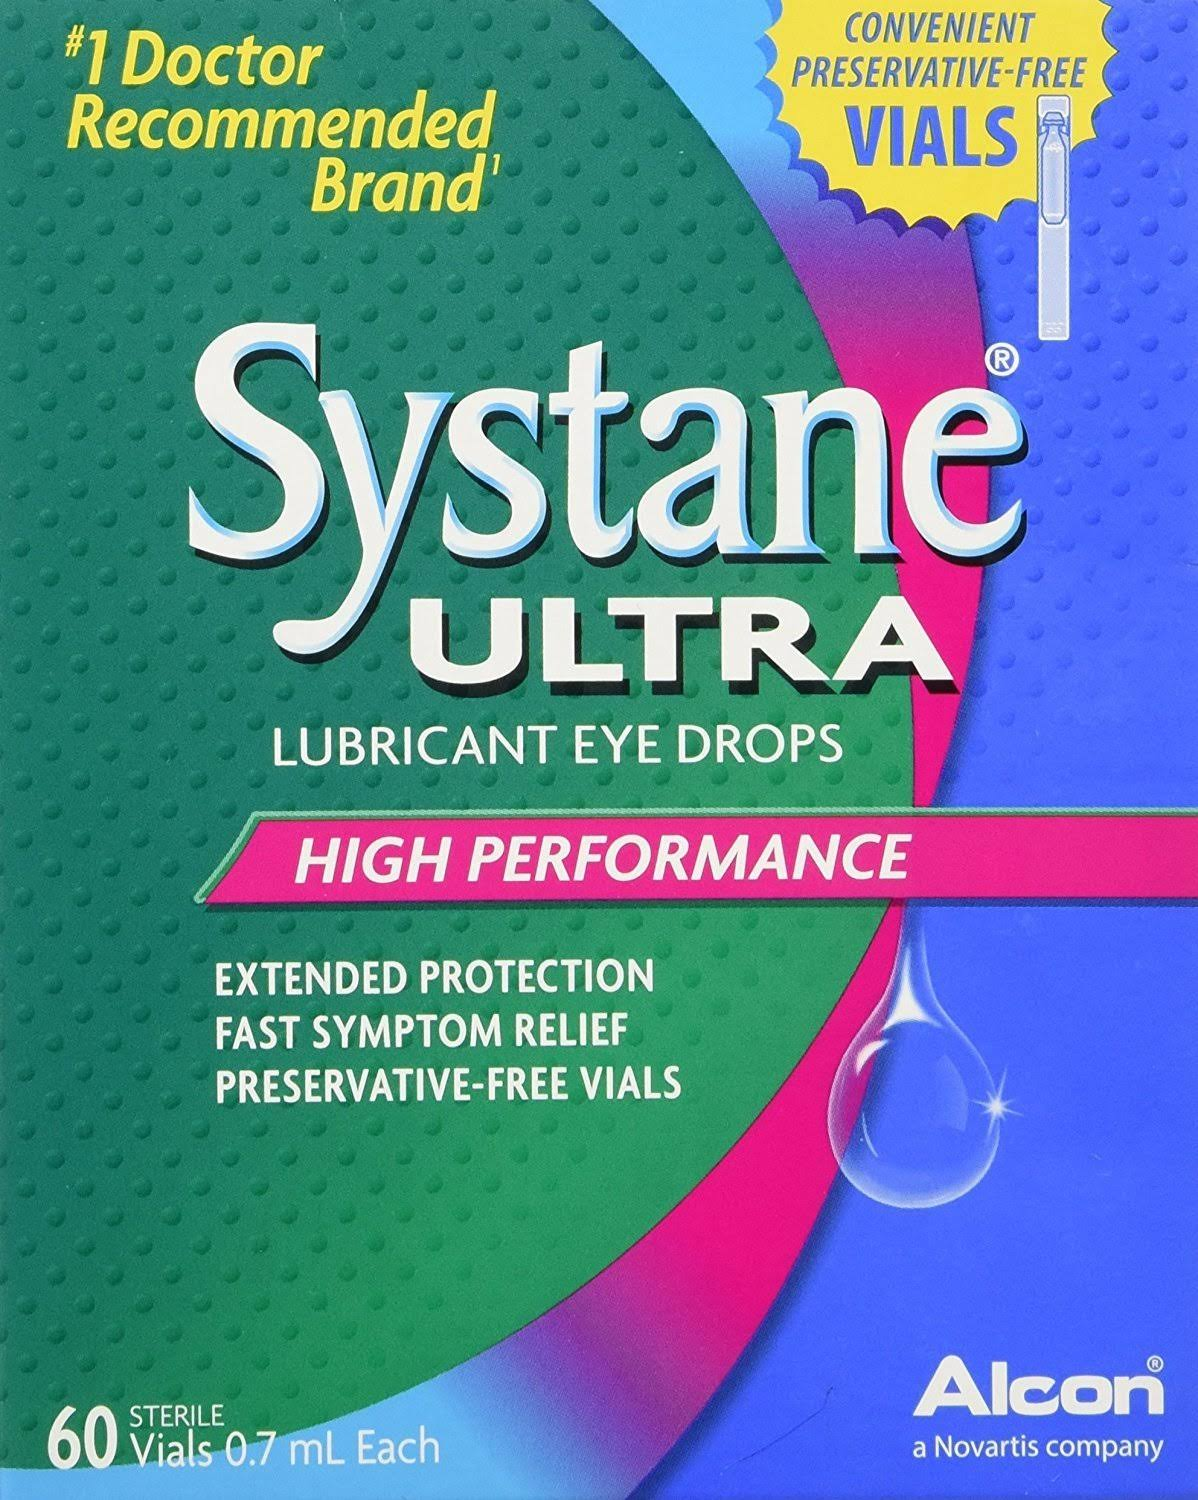 Systane Ultra Lubricant Eye Drops - 60 vials